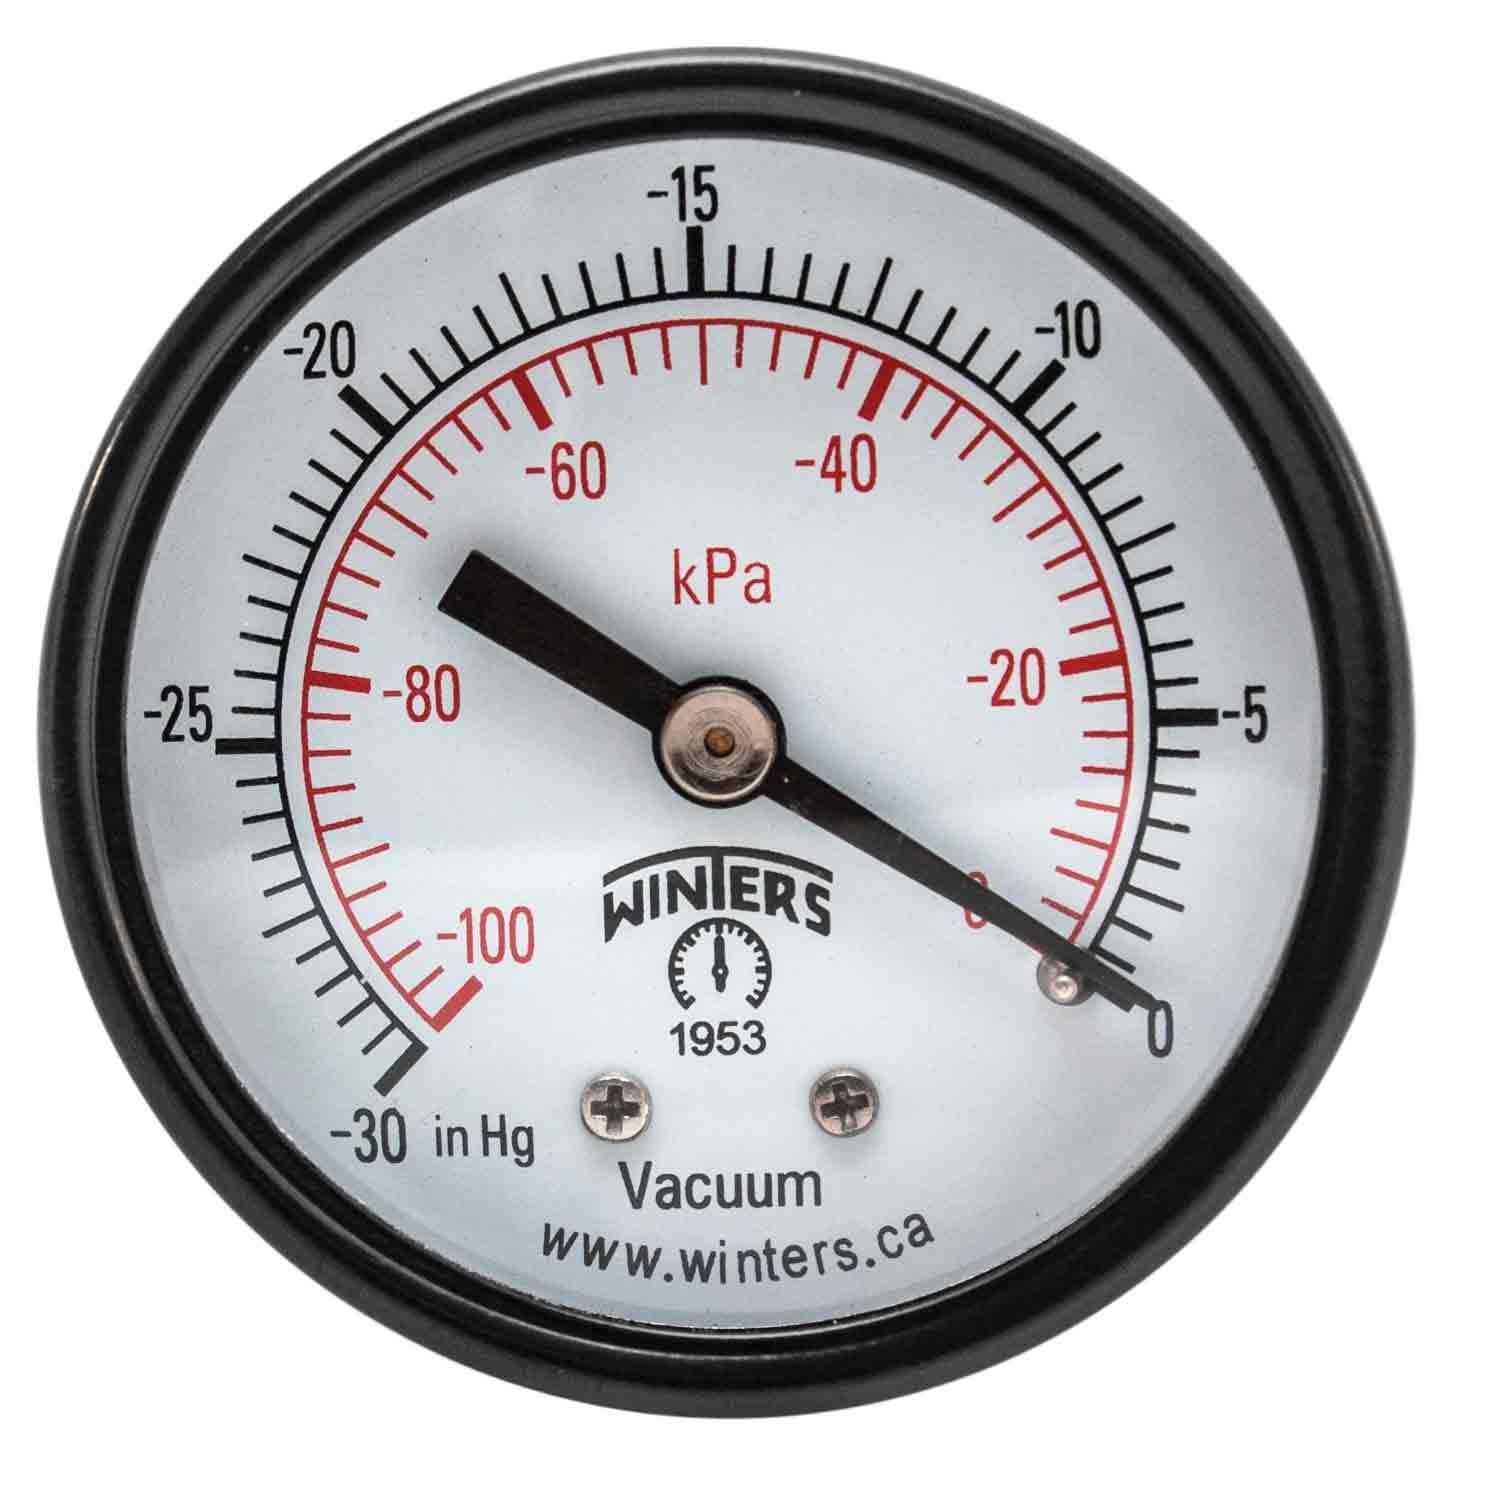 "Winters PEM Series Steel Dual Scale Economy Pressure Gauge, 30""Hg Vacuum/kpa, 2"" Dial Display, +/-3-2-3% Accuracy, 1/8"" NPT Center Back Mount"